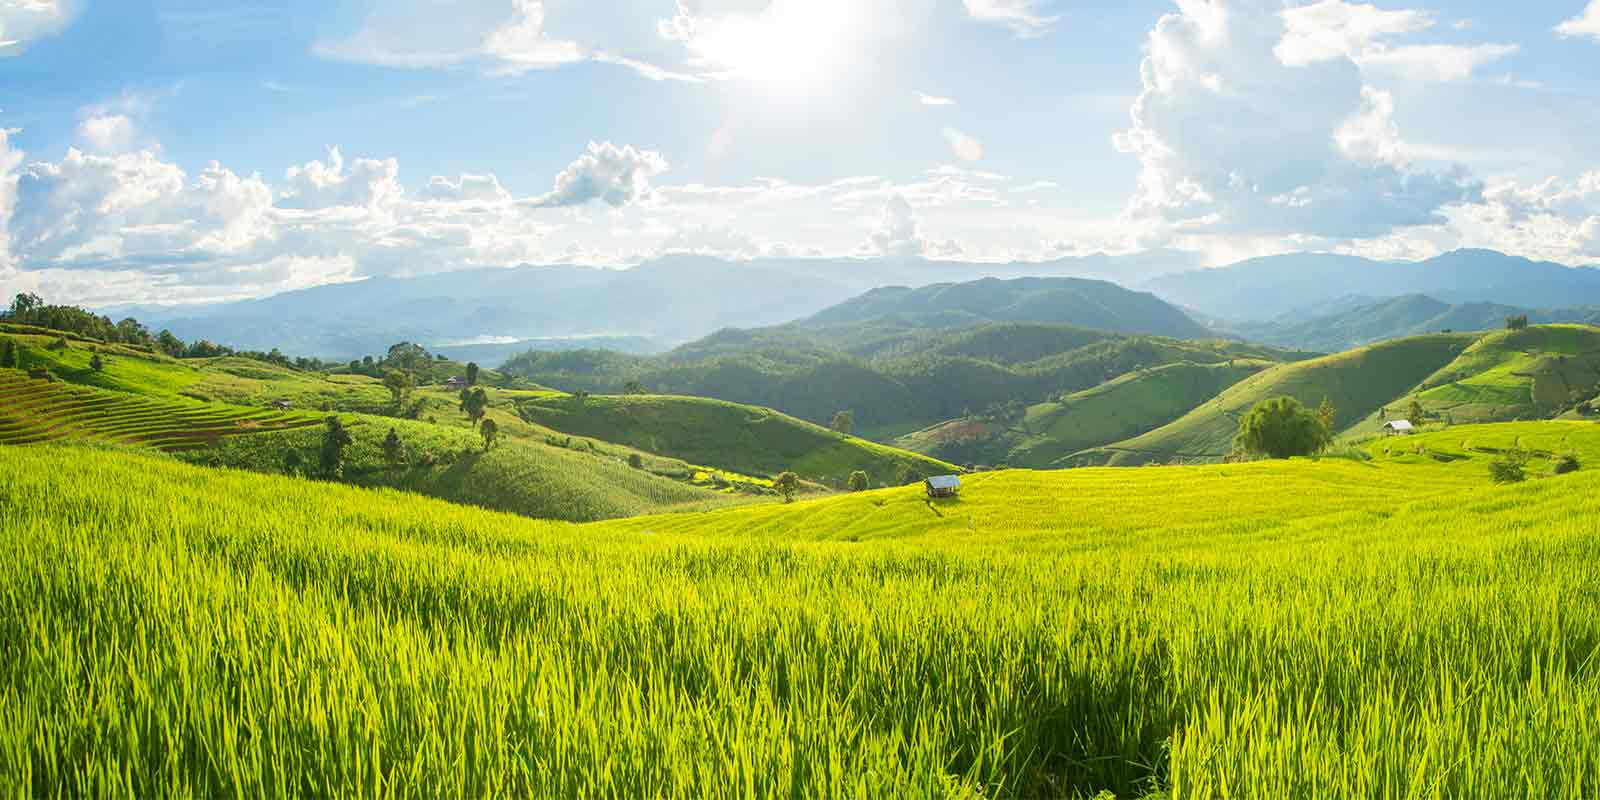 Picturesque scenery of rice fields near Chiang Mai